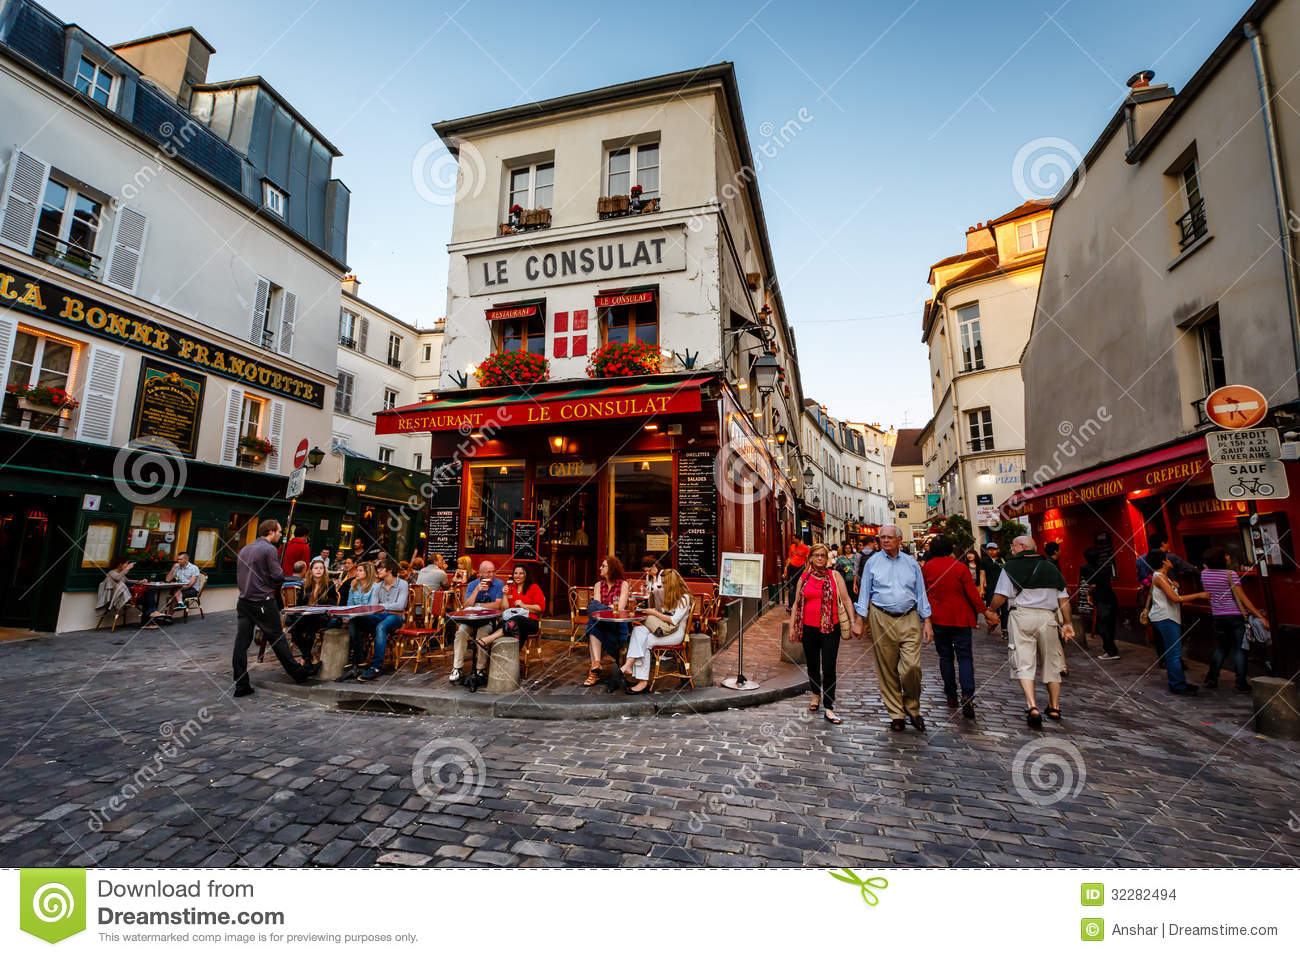 262b3210b7 View of Typical Paris Cafe Le Consulat on Montmartre